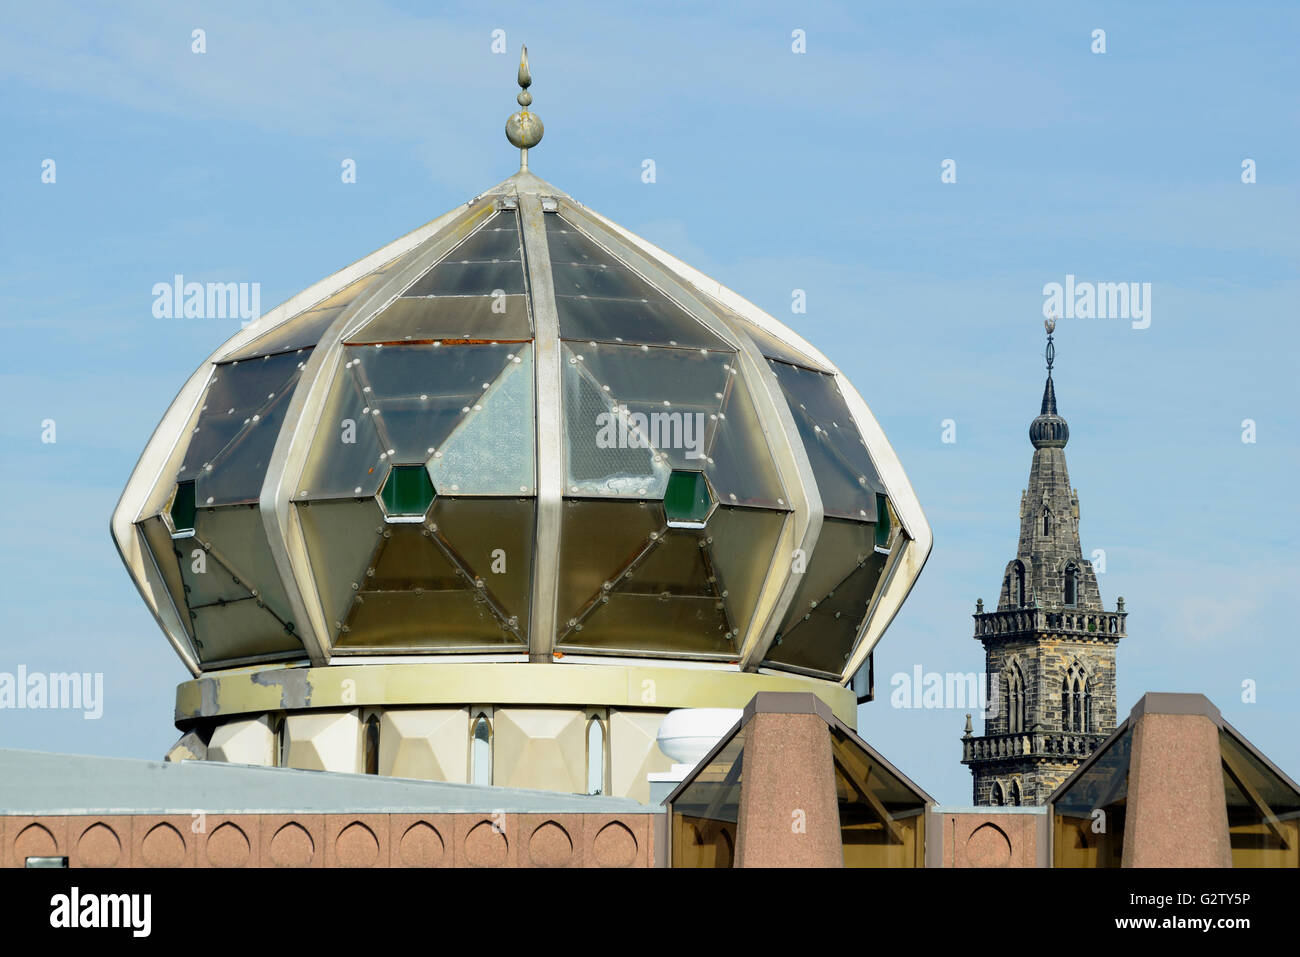 Scotland, Glasgow, East End, Central Mosque. - Stock Image